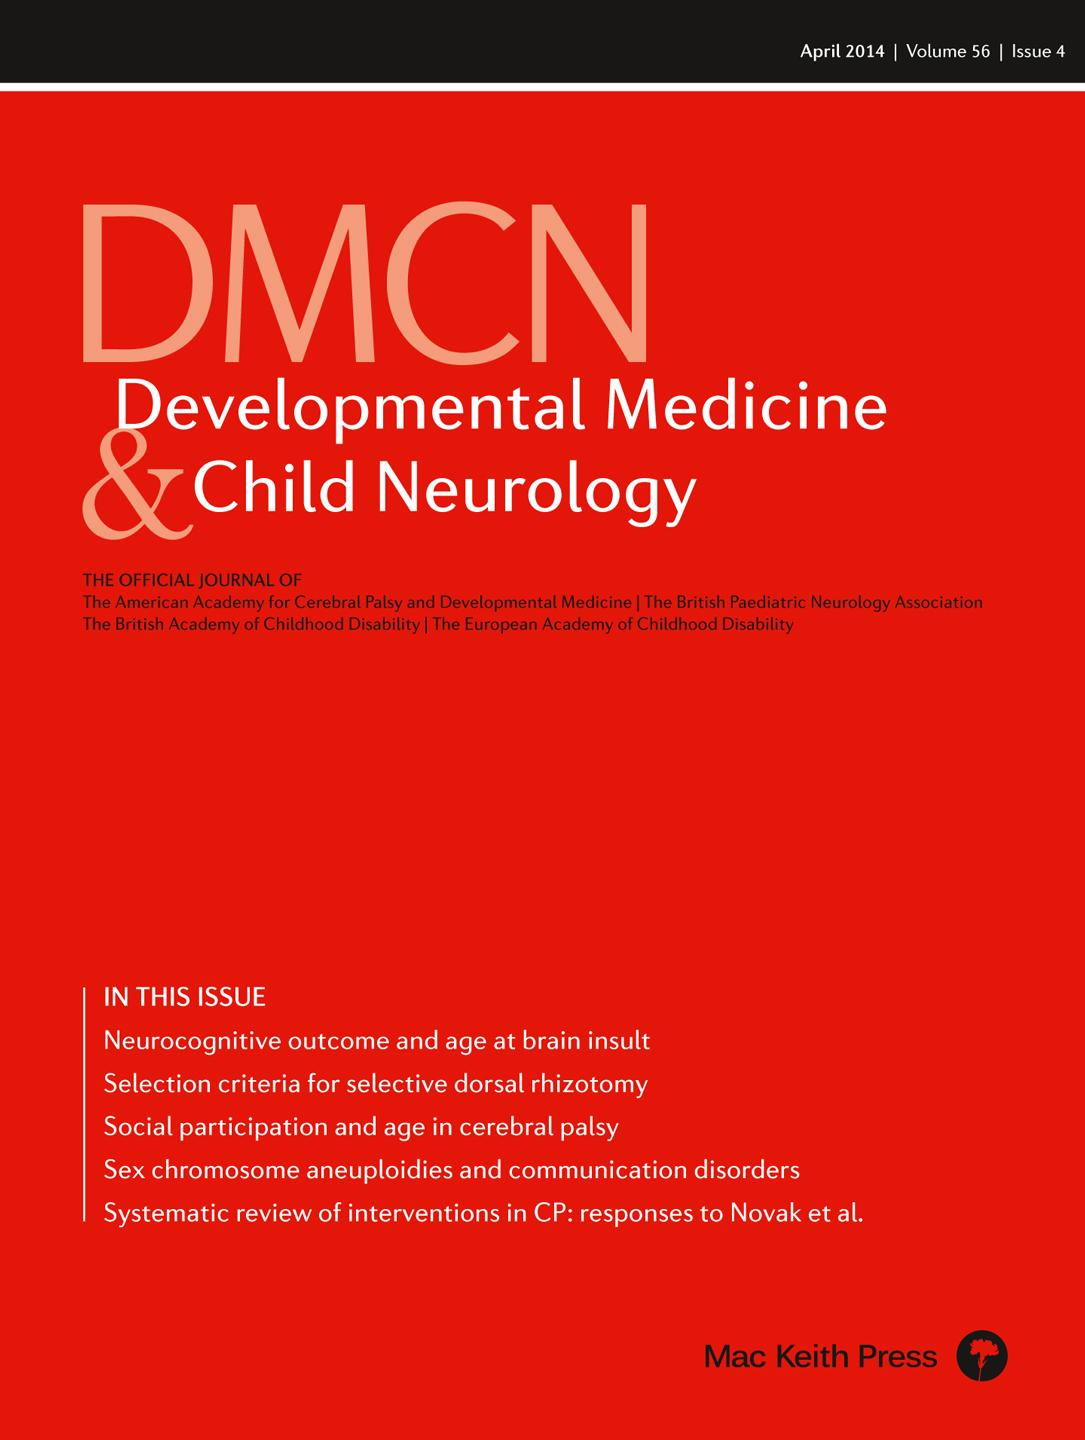 DMCN Discussion: 'Predicting neurocognitive and behavioural outcome after early brain insult'